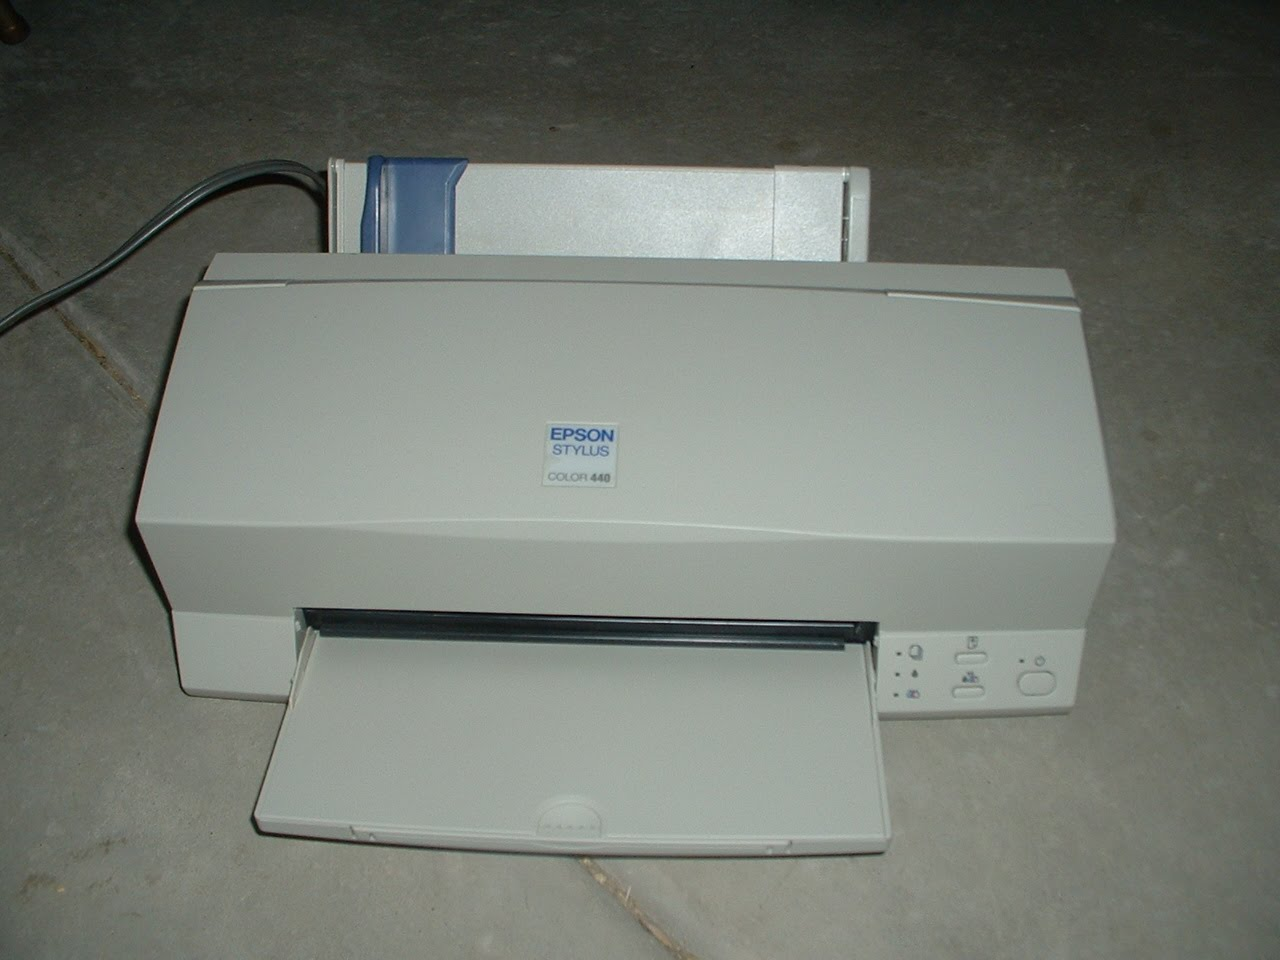 Cd epson stylus color 660 printer drivers for windows creative.